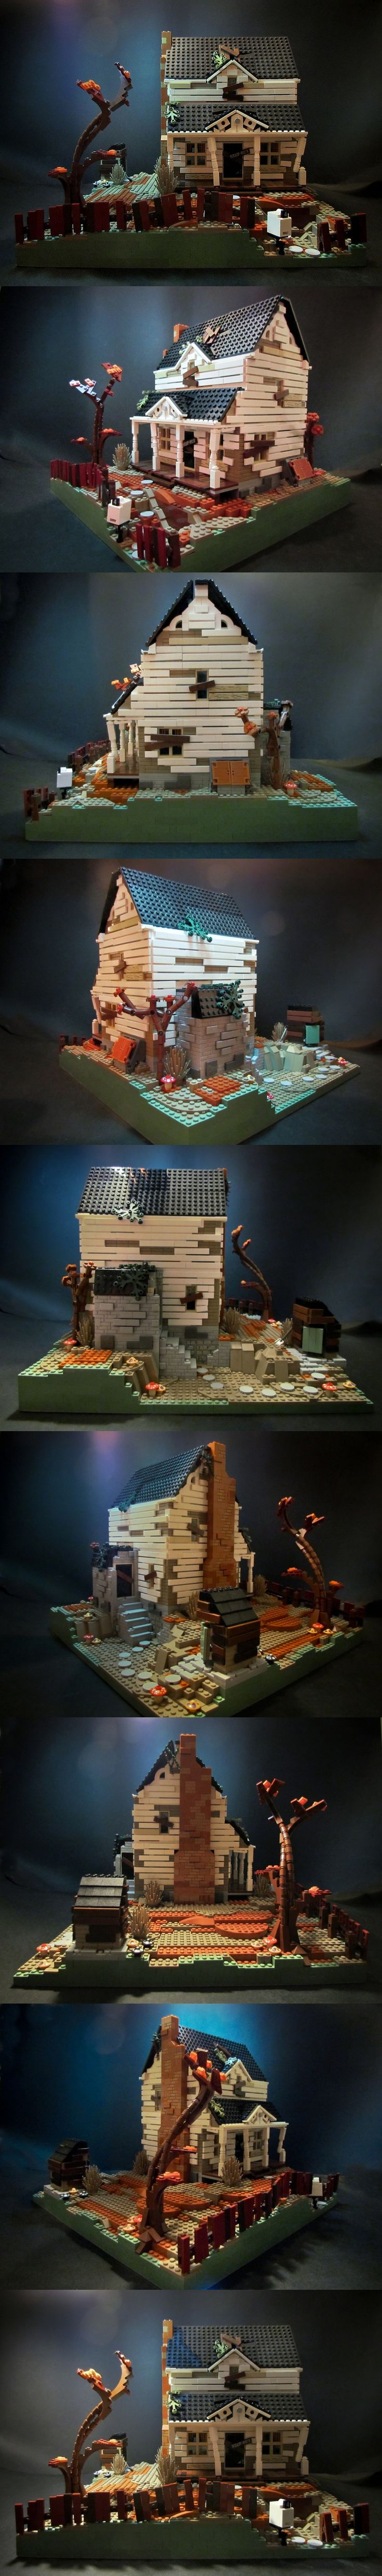 Pin lego 60032 city the lego summer wave in official images on - Abandoned House In Lego